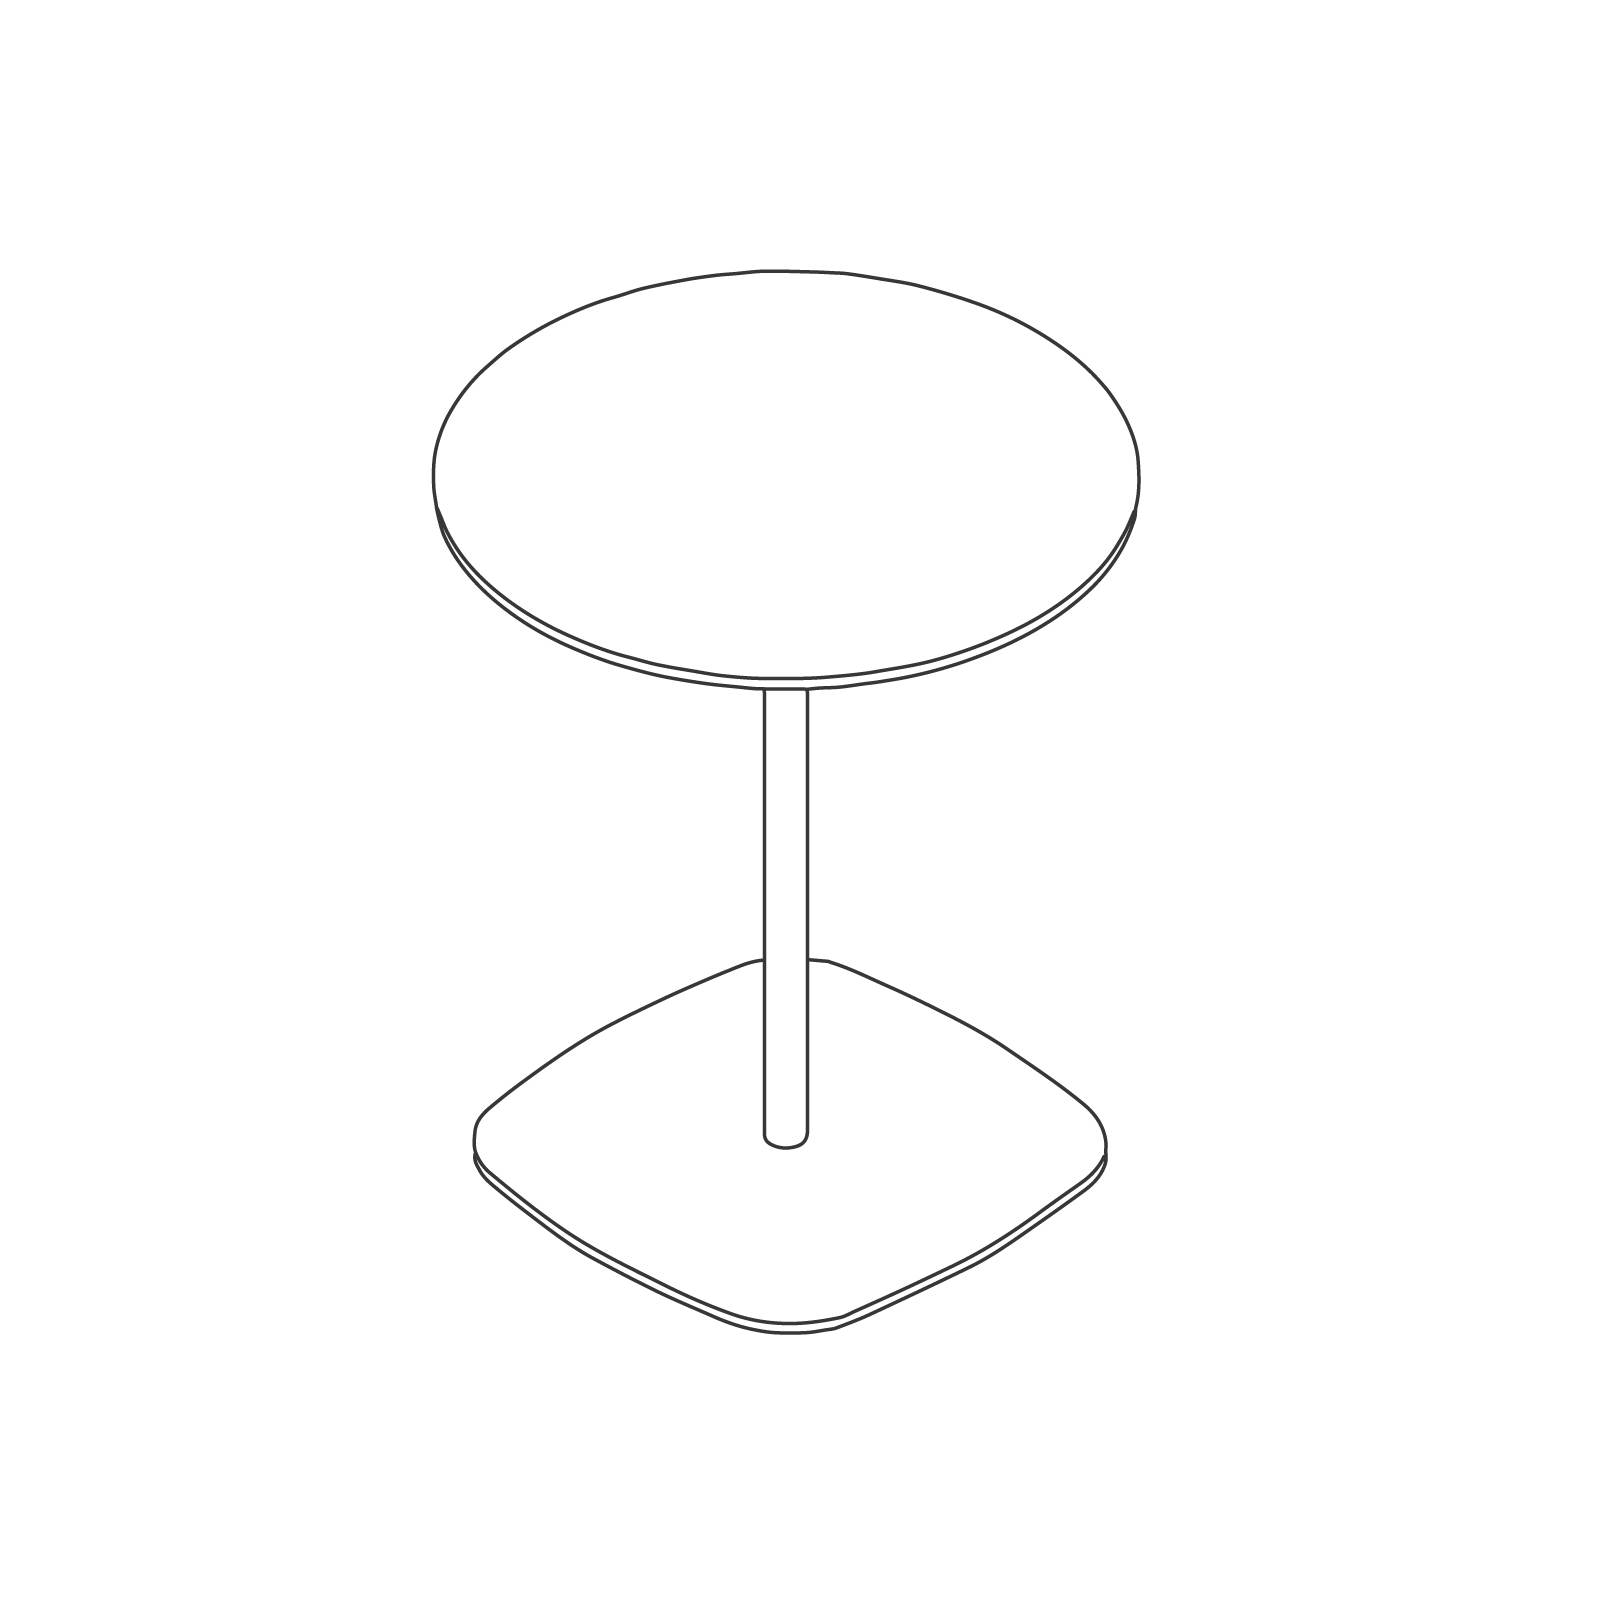 A line drawing - Ped Coffee Table–Round